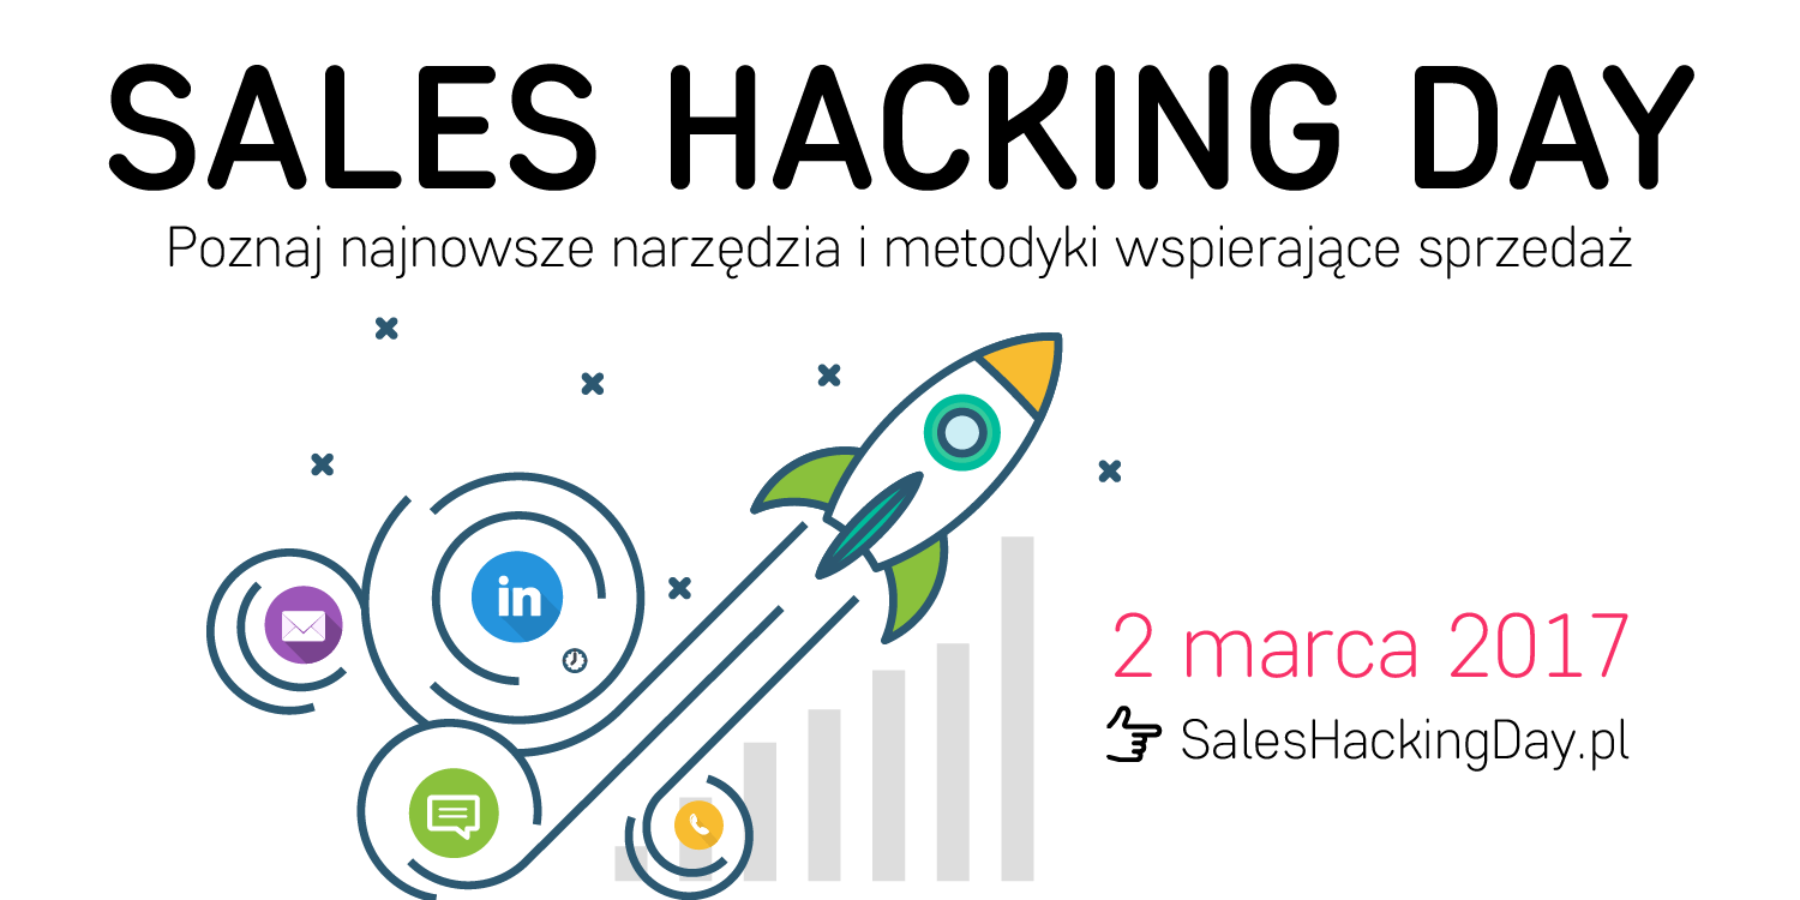 Sales Hacking Day